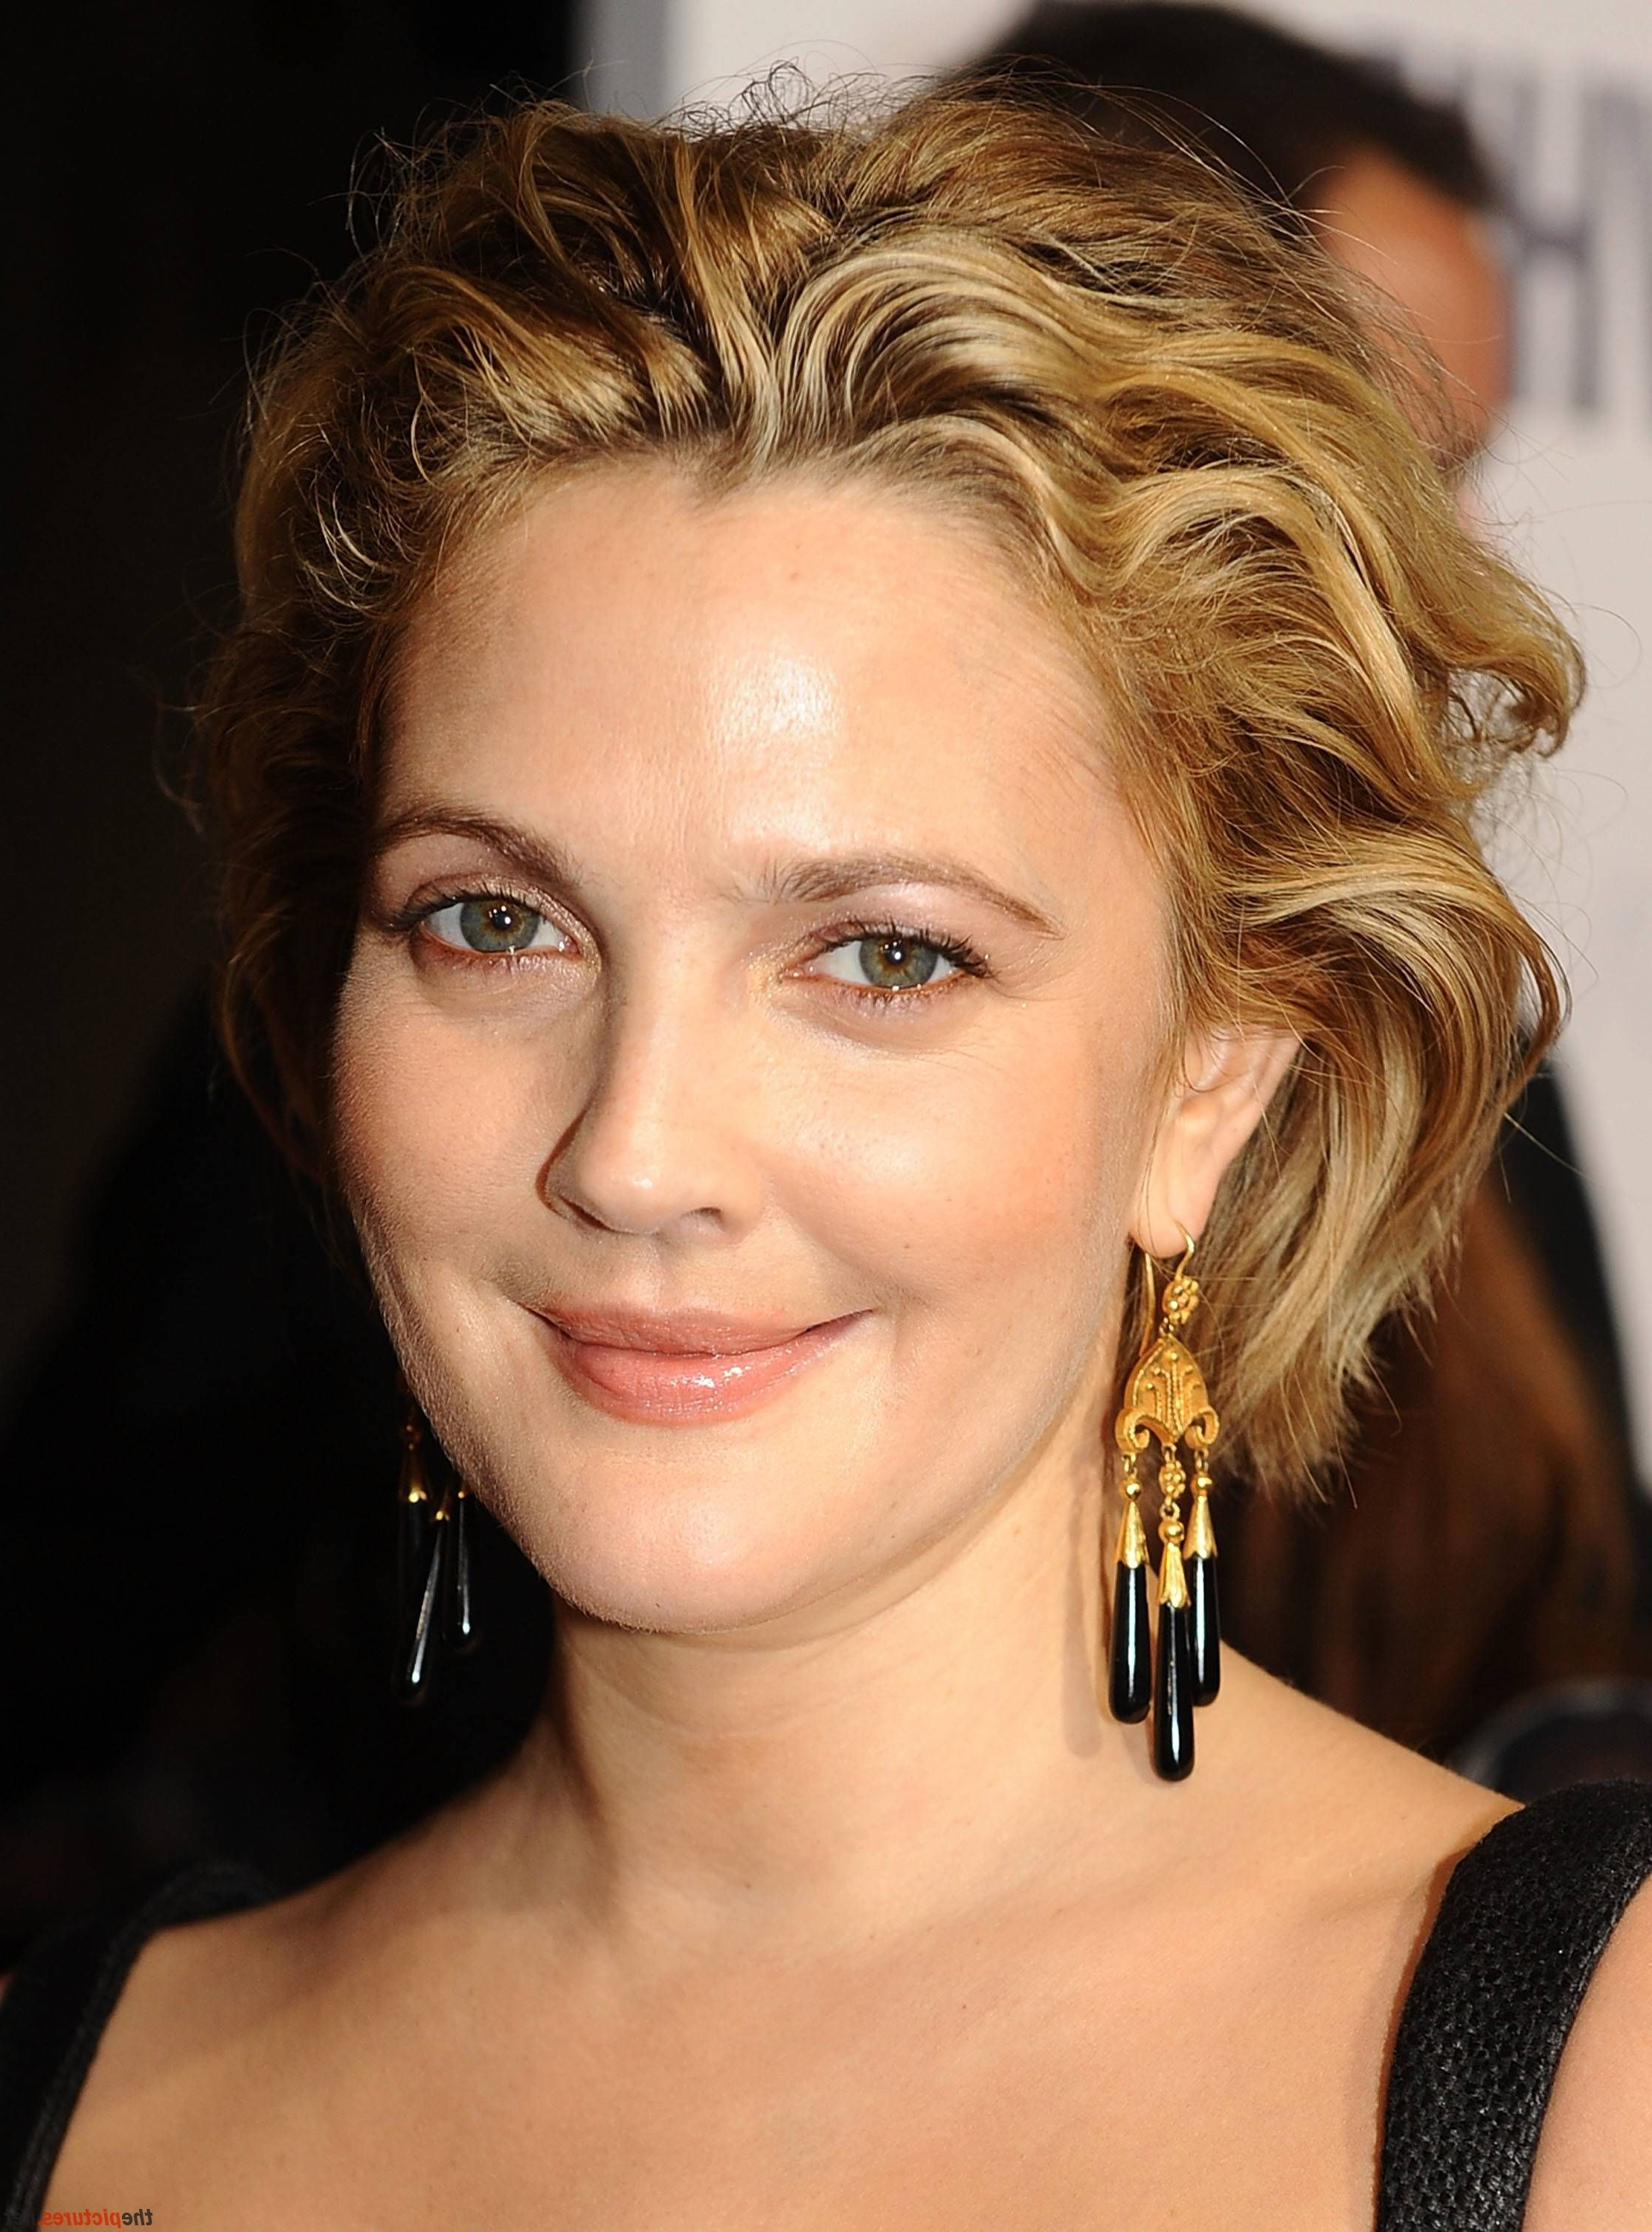 Short Prom Hairstyles: 24 Gorgeous Styles | Pinterest | Short Hair In Drew Barrymore Short Haircuts (View 24 of 25)